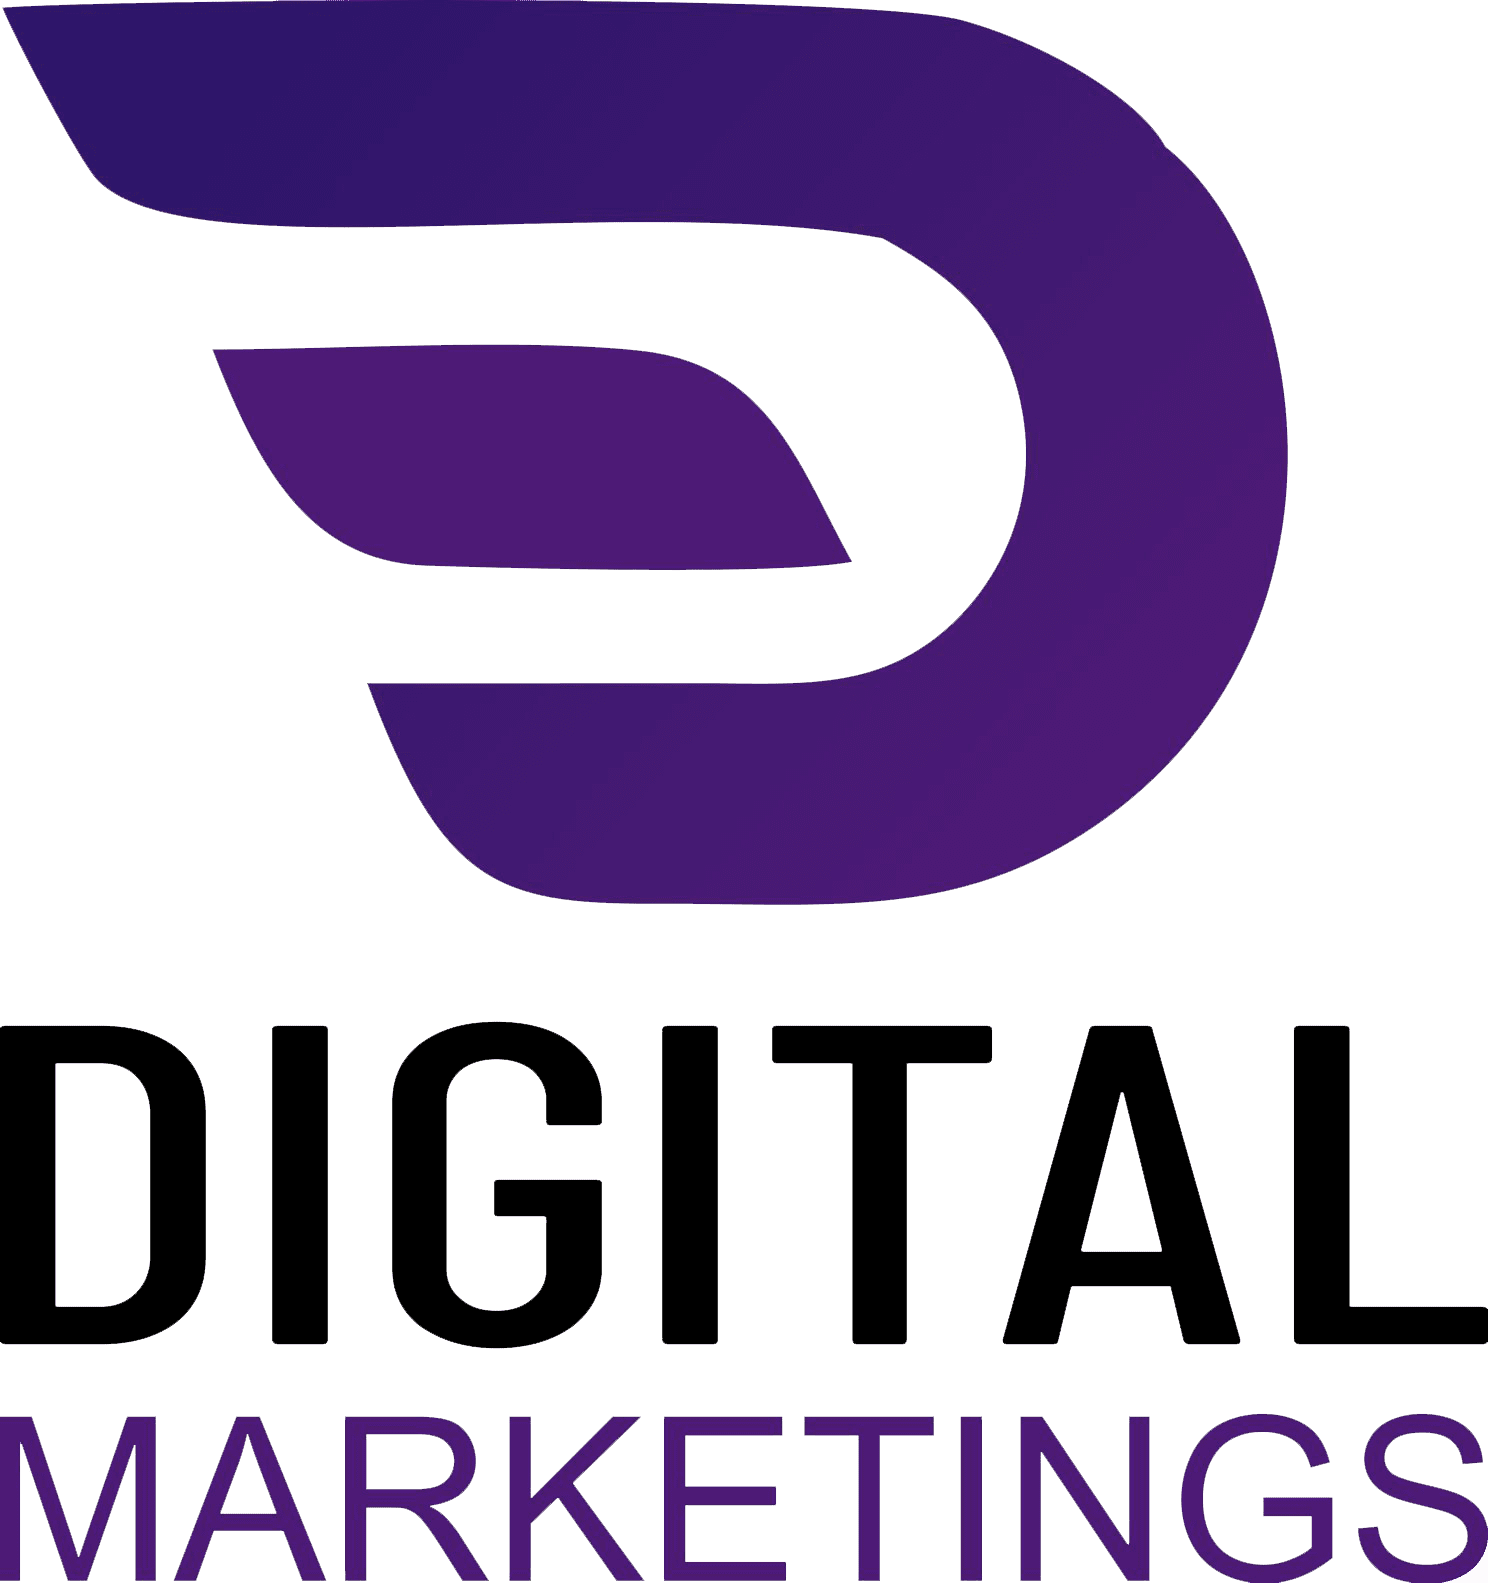 Digital Marketings